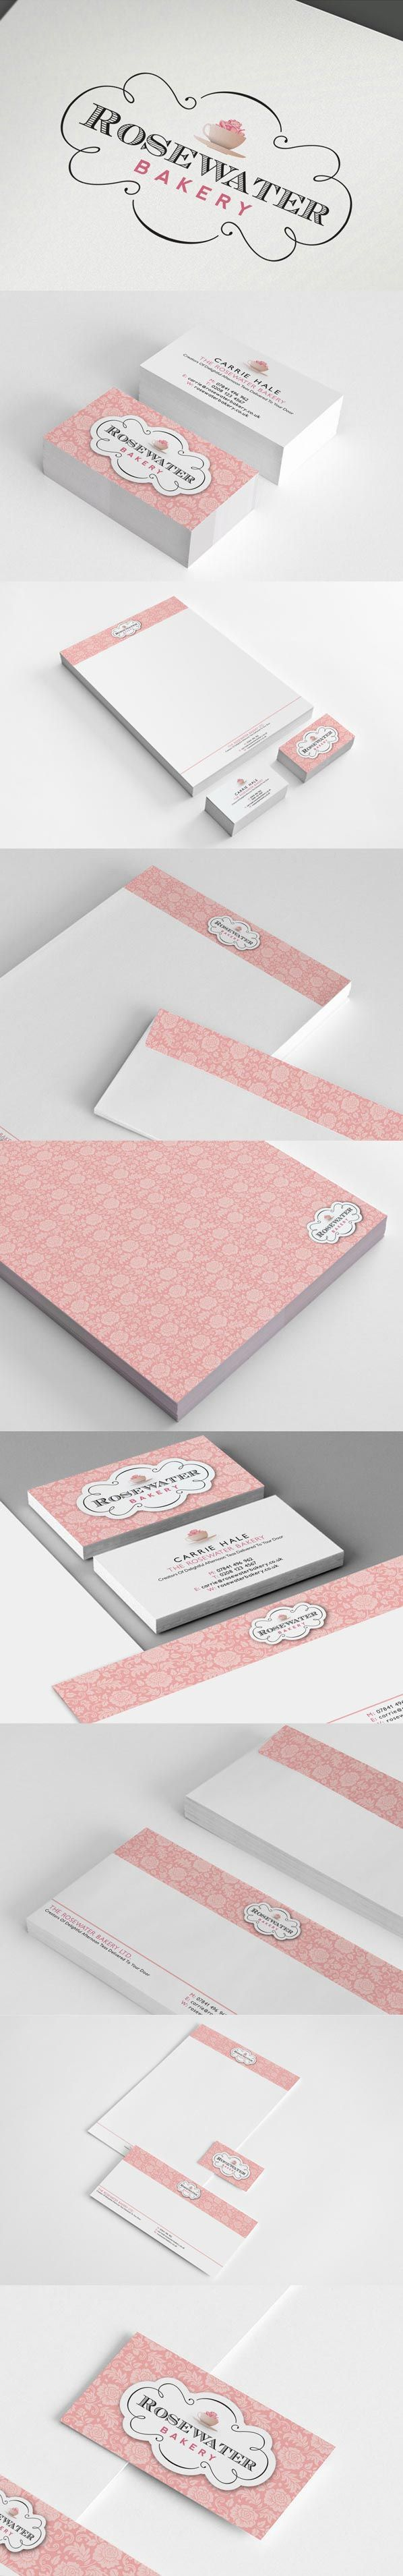 Rosewater Bakery by Geoff Goode branding identity logo stationery